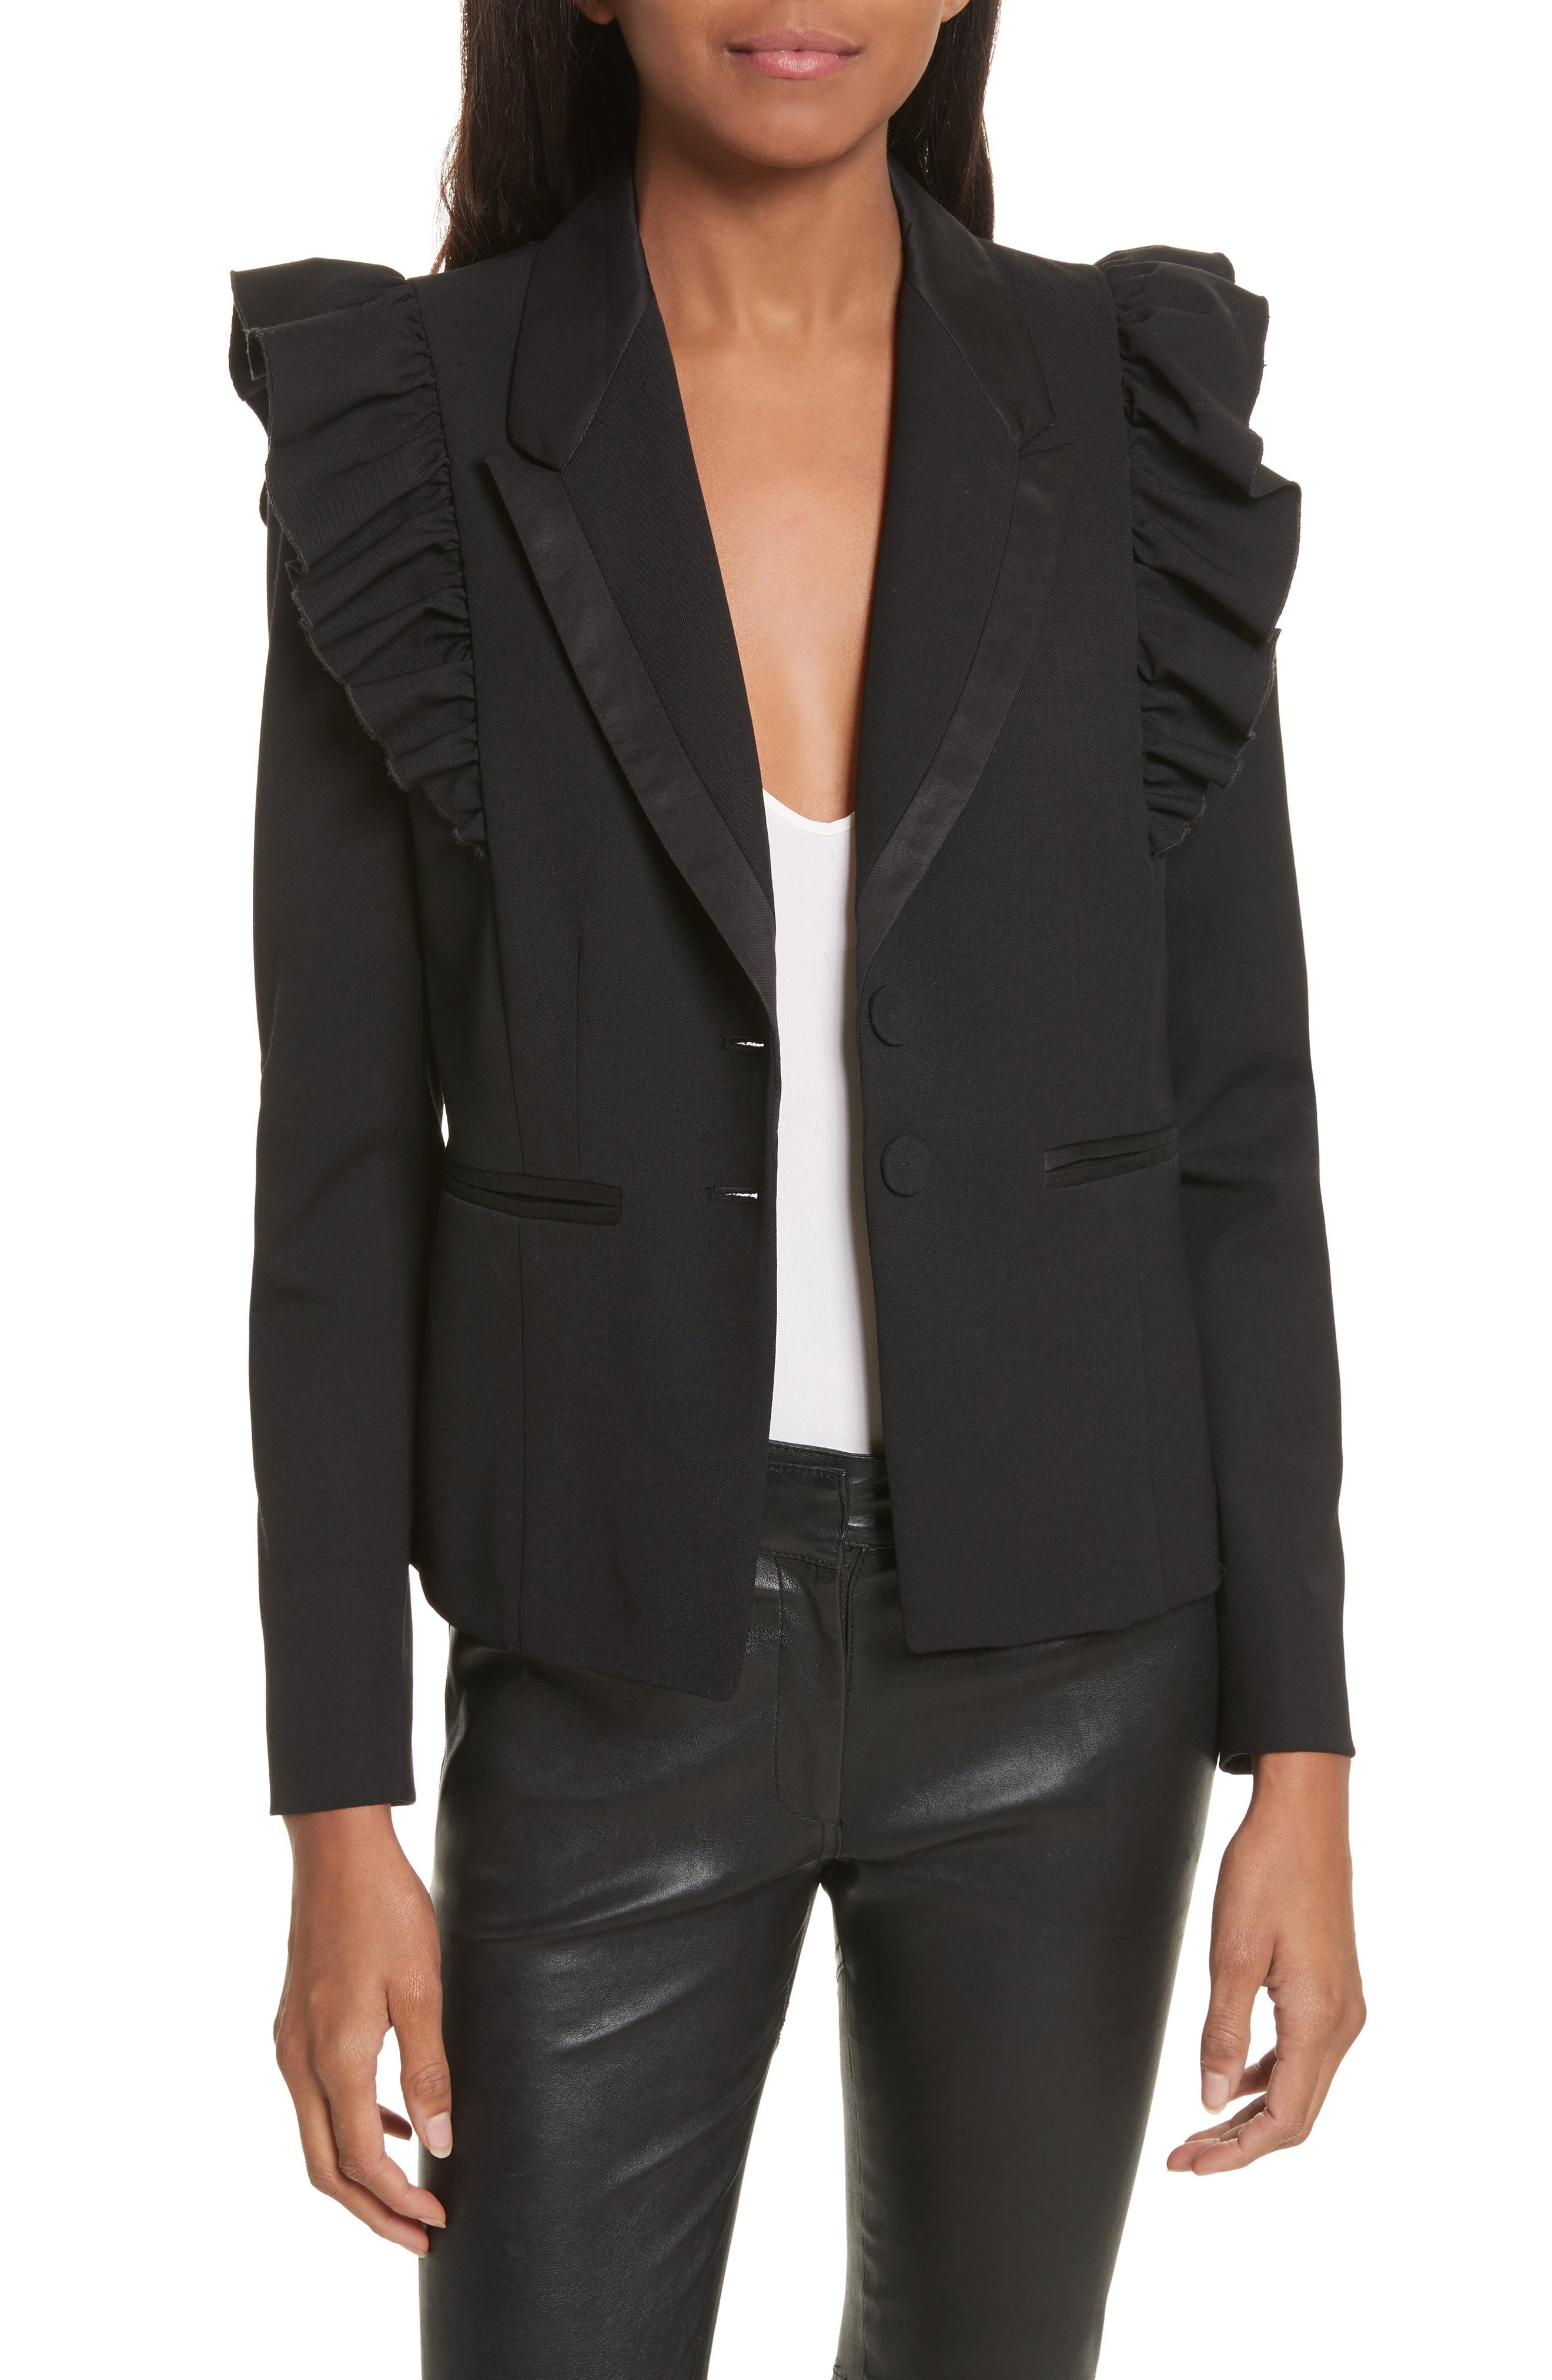 Ruffle Stretch Wool Jacket,                         Main,                         color, Black